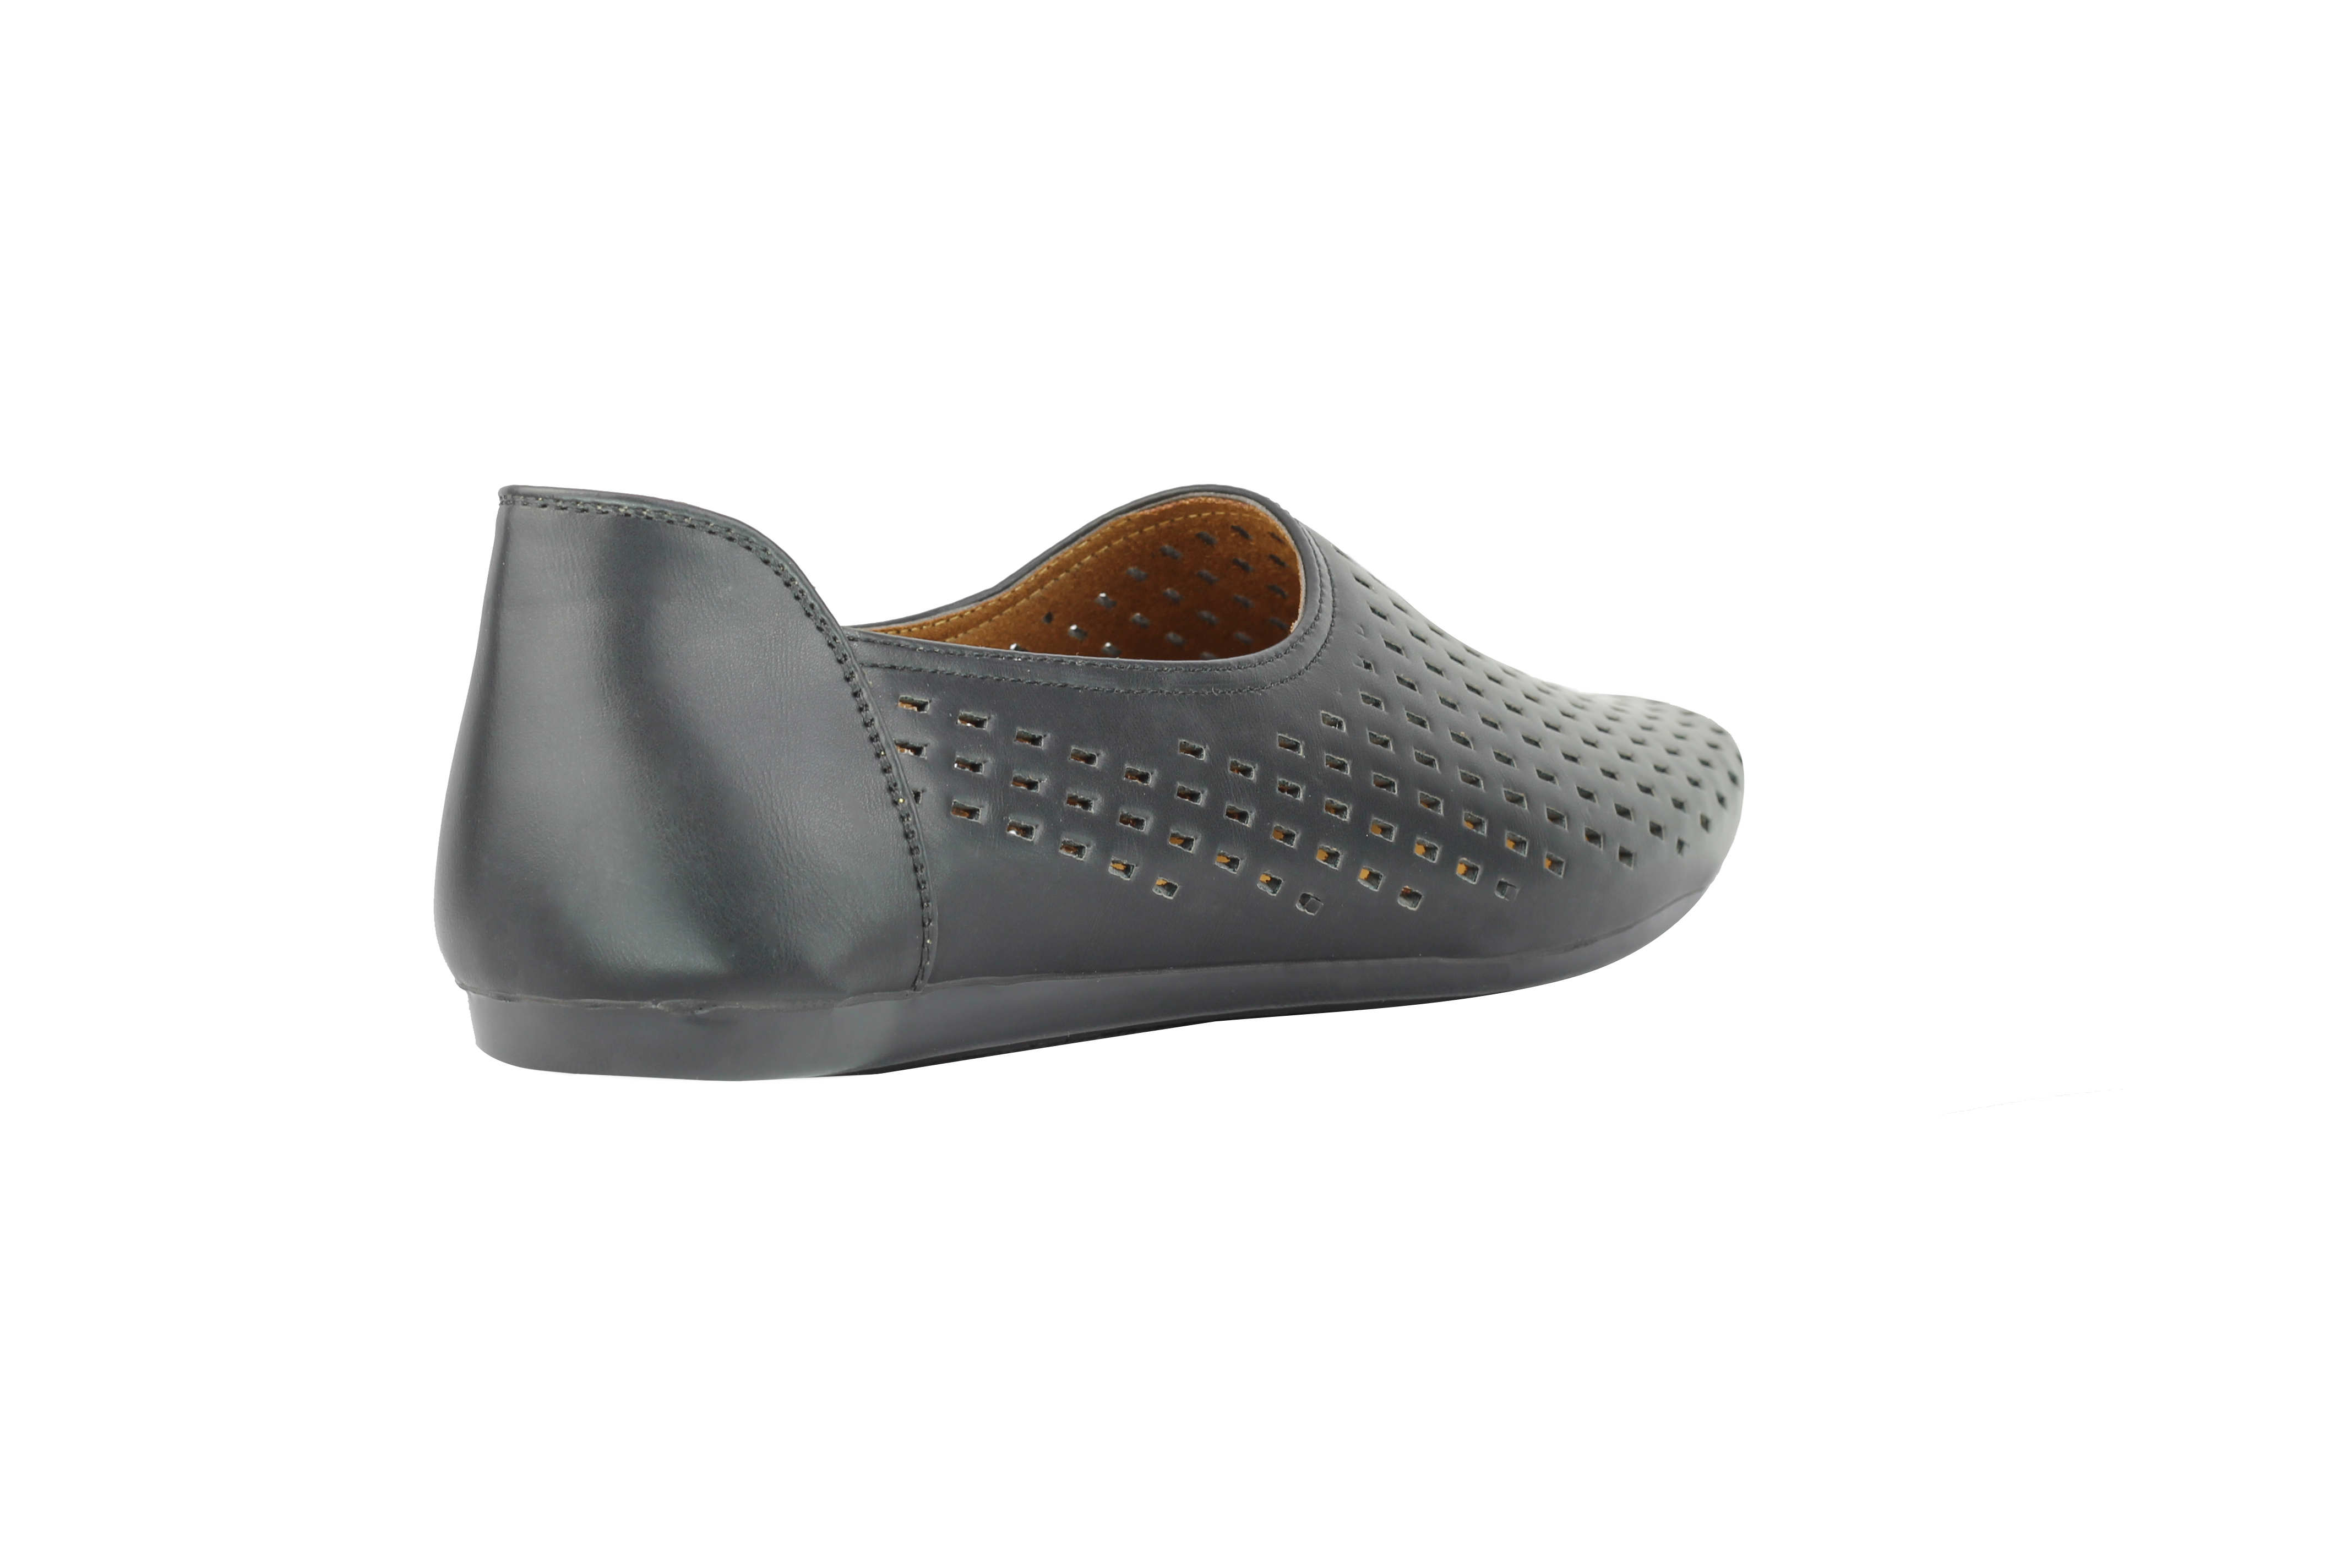 Mens Faux Leather Perforated Holes Loafers Summer Slip on Flat Soles Moccasins Shoes